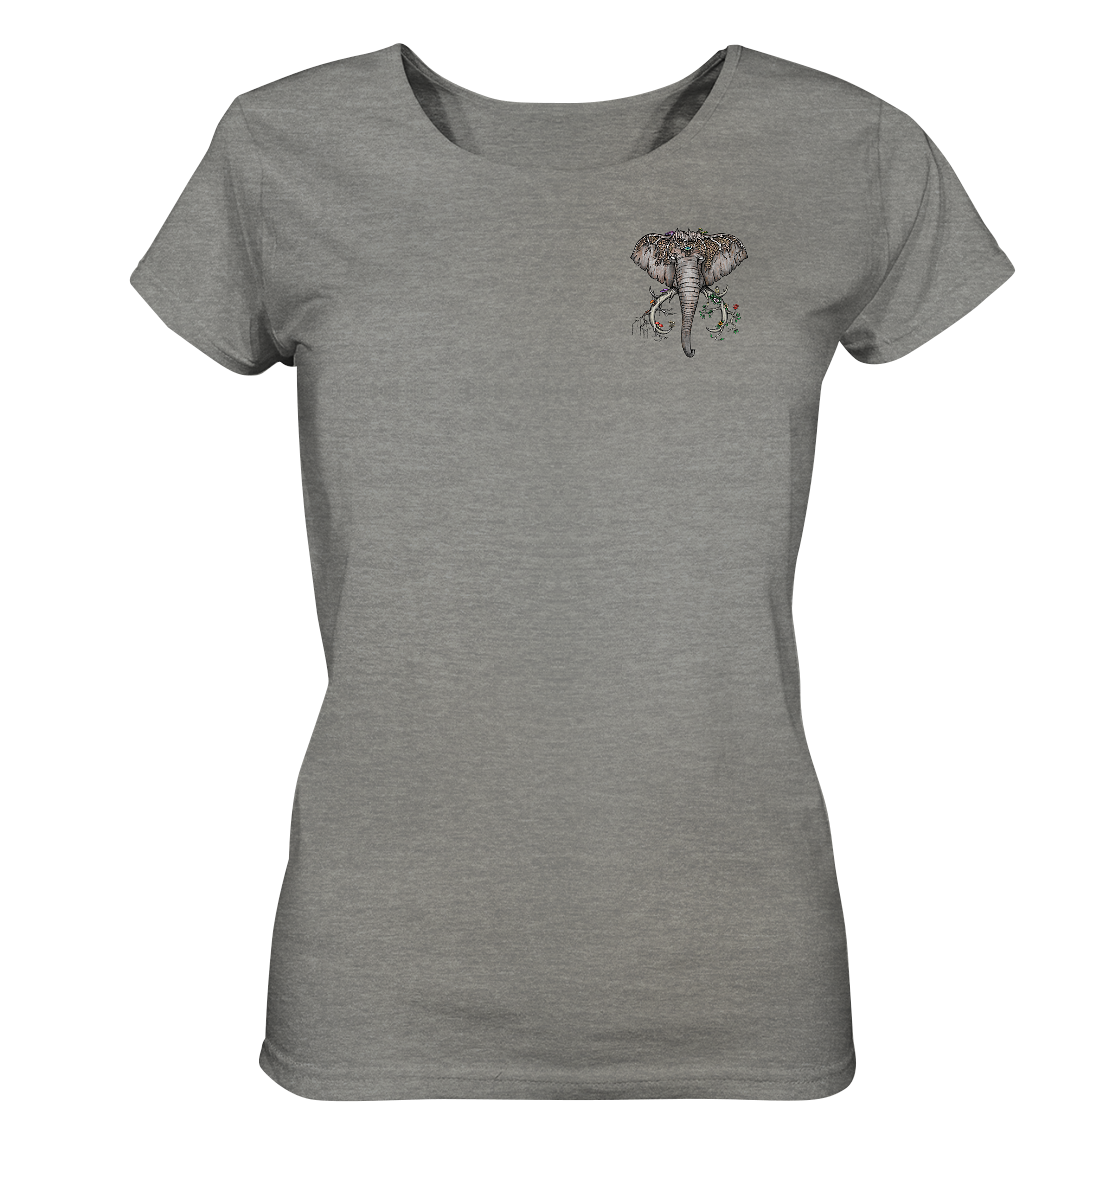 front-ladies-organic-shirt-meliert-818381-1116x-3.png